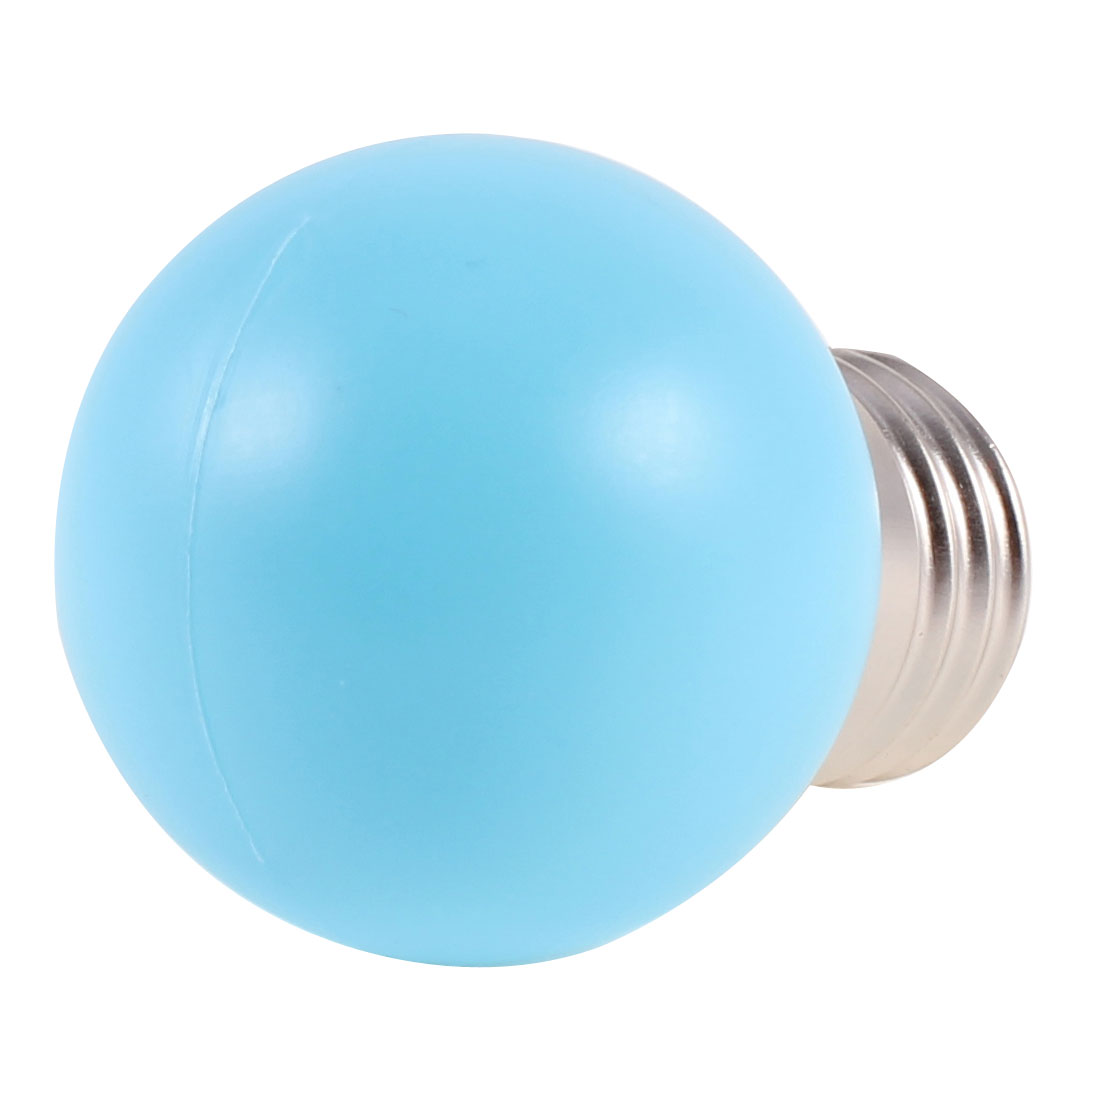 Decorative Baby Room E27 Type Blue Light LED Bulb Lamp AC 160-250V 1W